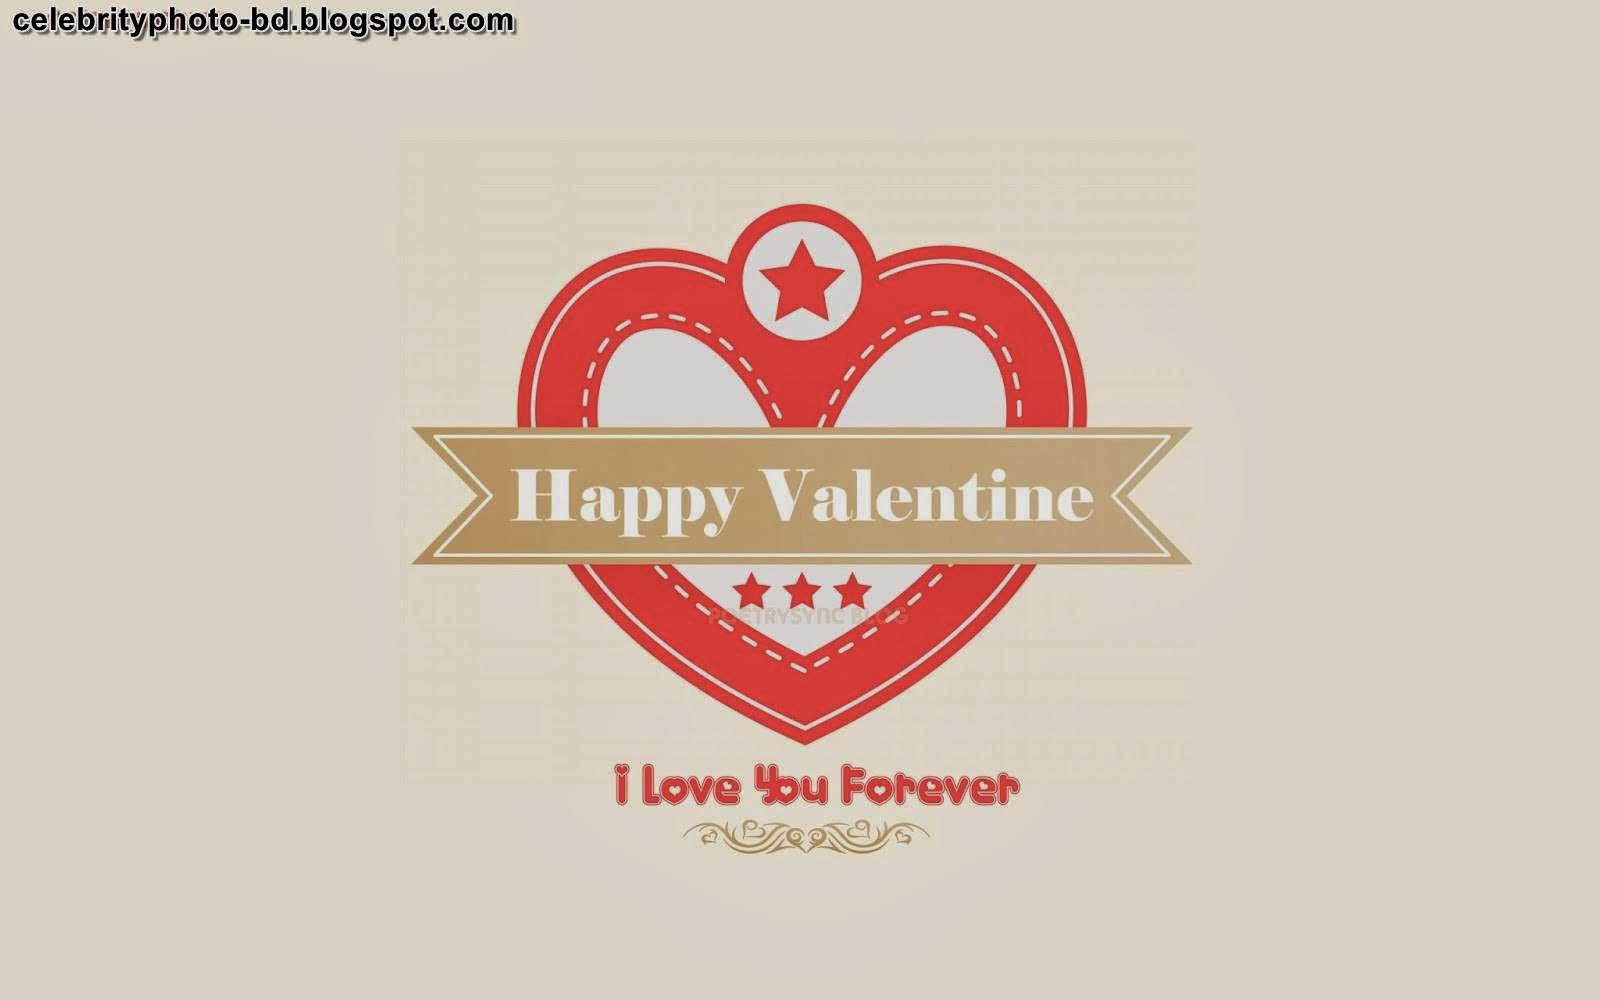 Valentines+Day+Latest+Lovely+Hearts+HD+Wallpapers+and+Wishes+Image+Cards+2014003